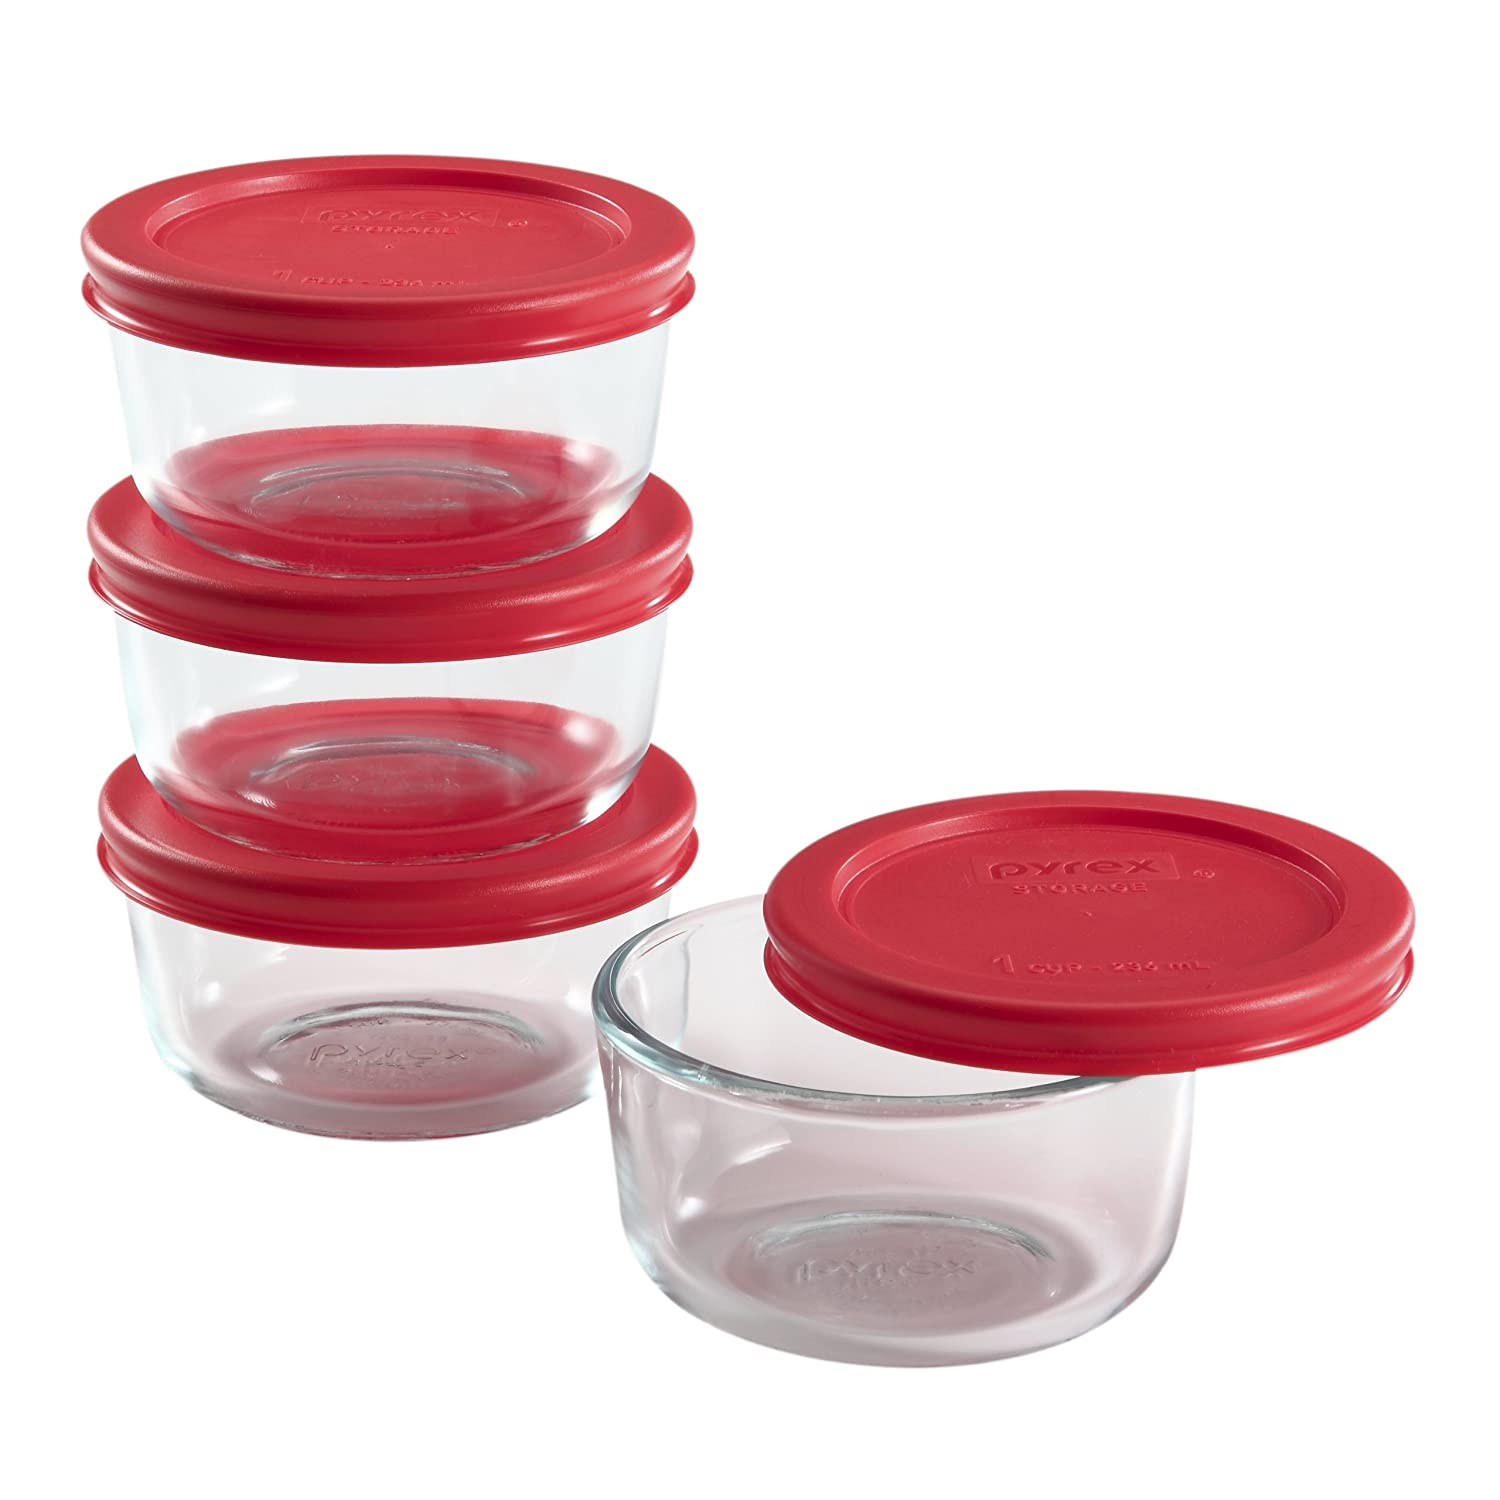 pyrex storage containers